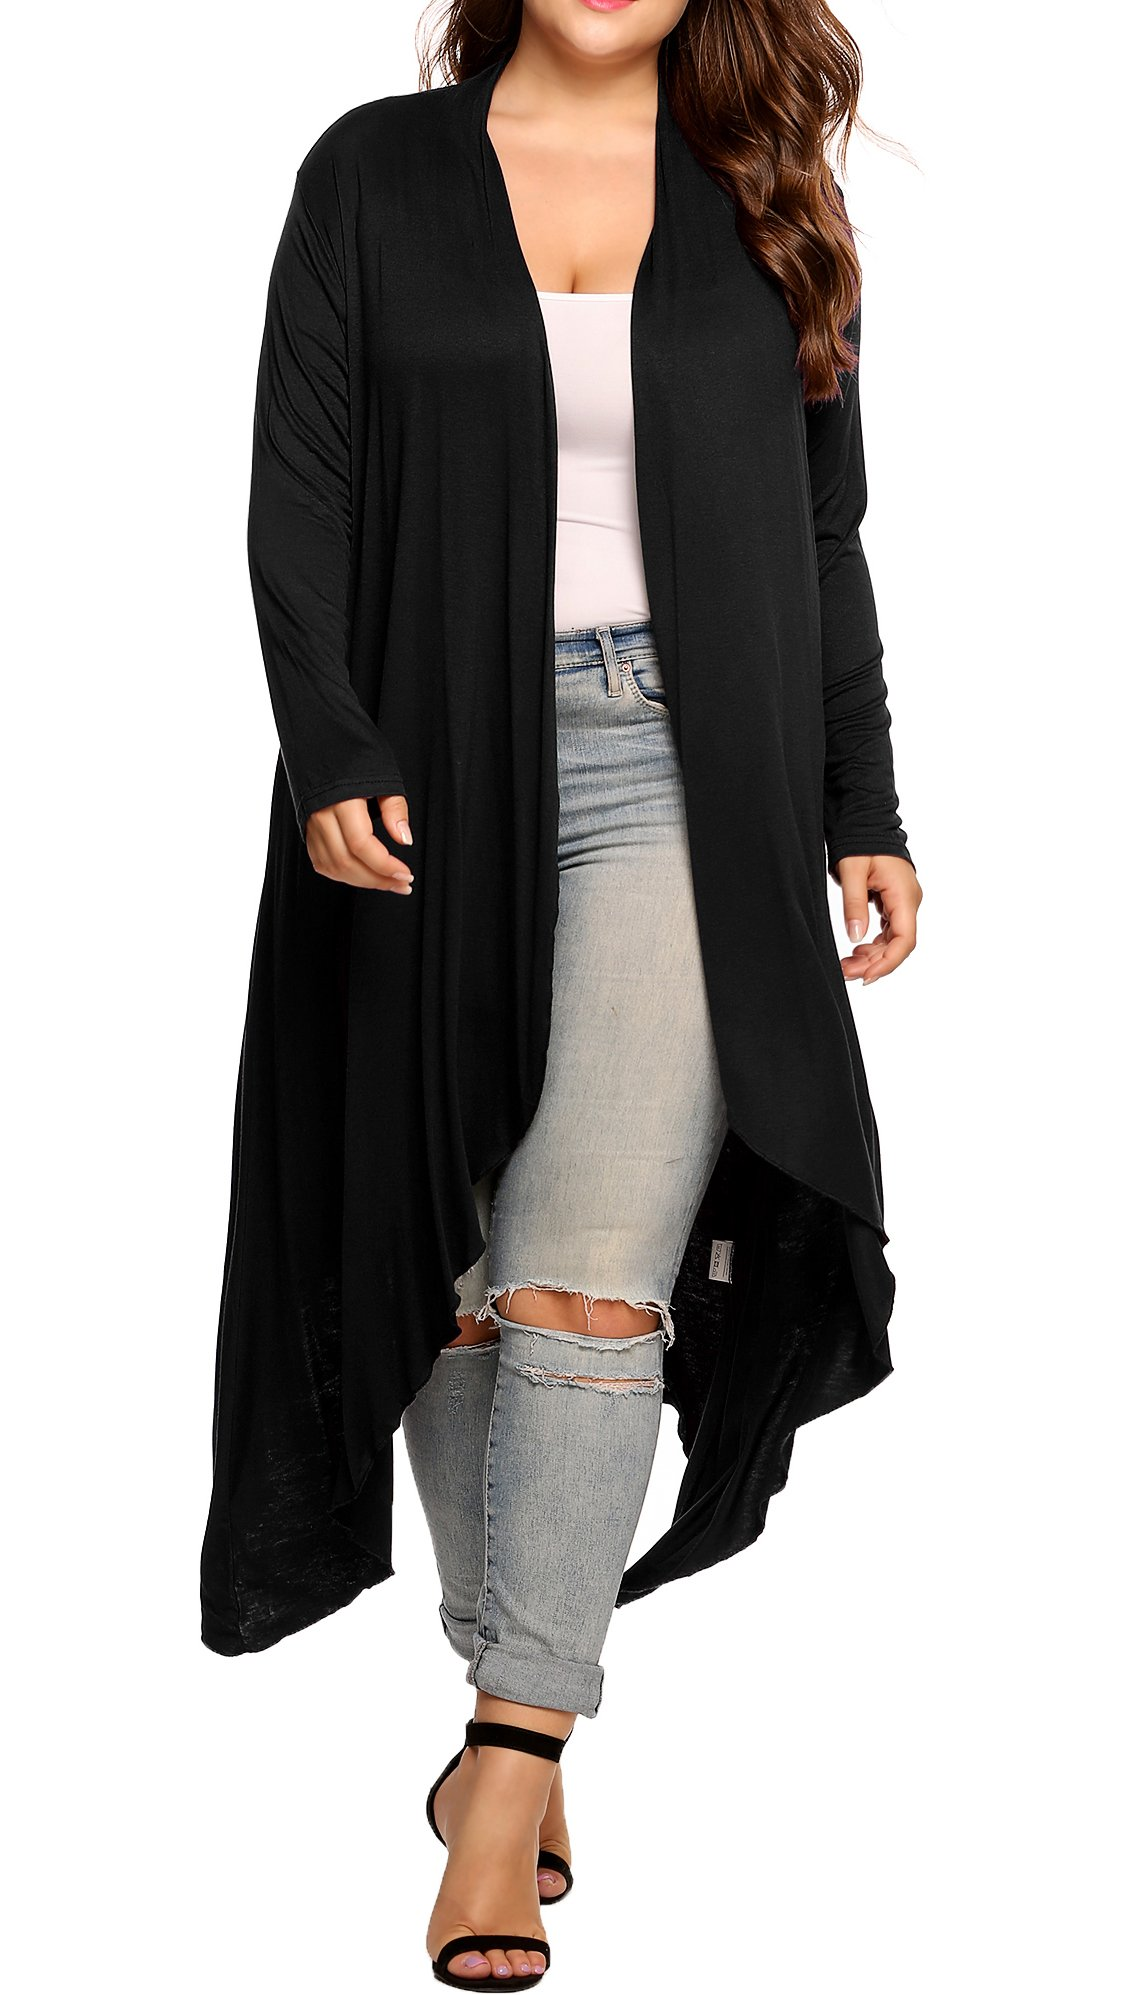 Plus Size Clothing - Women's Plus Size Cardigan Long Sleeve Open Front Drape Cardigans Lightweight Long Duster